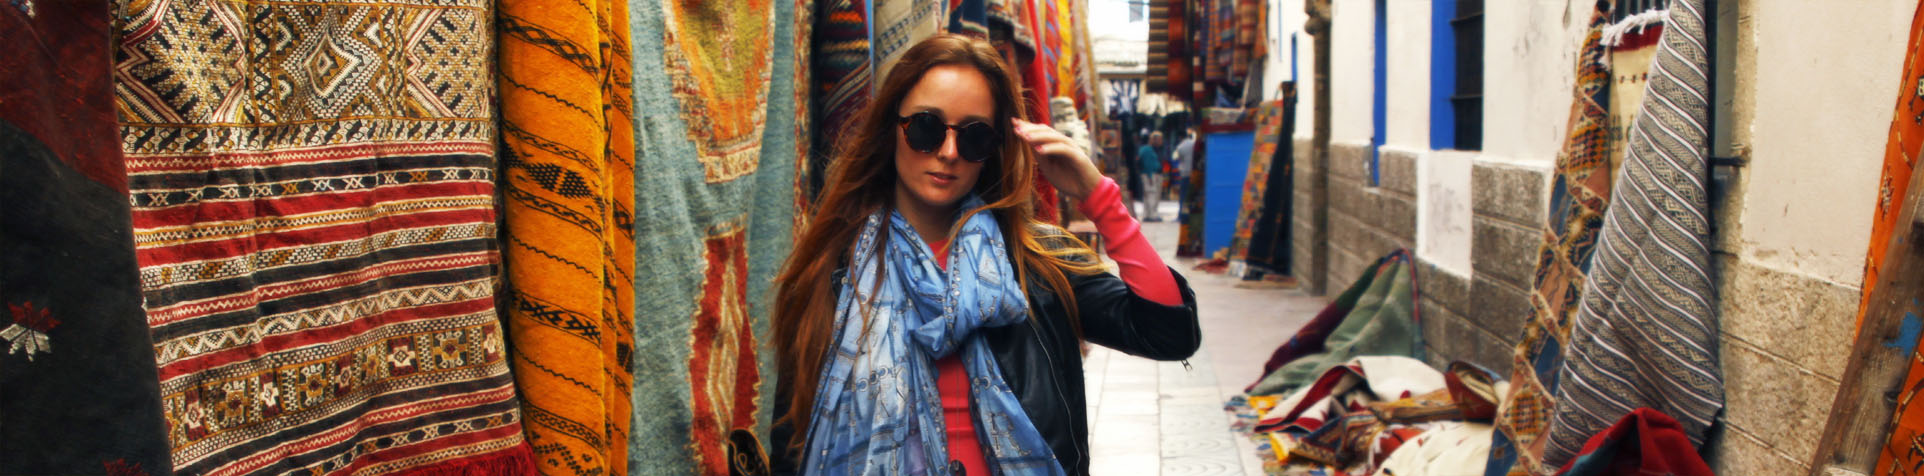 Your internship in Morocco| starts here!